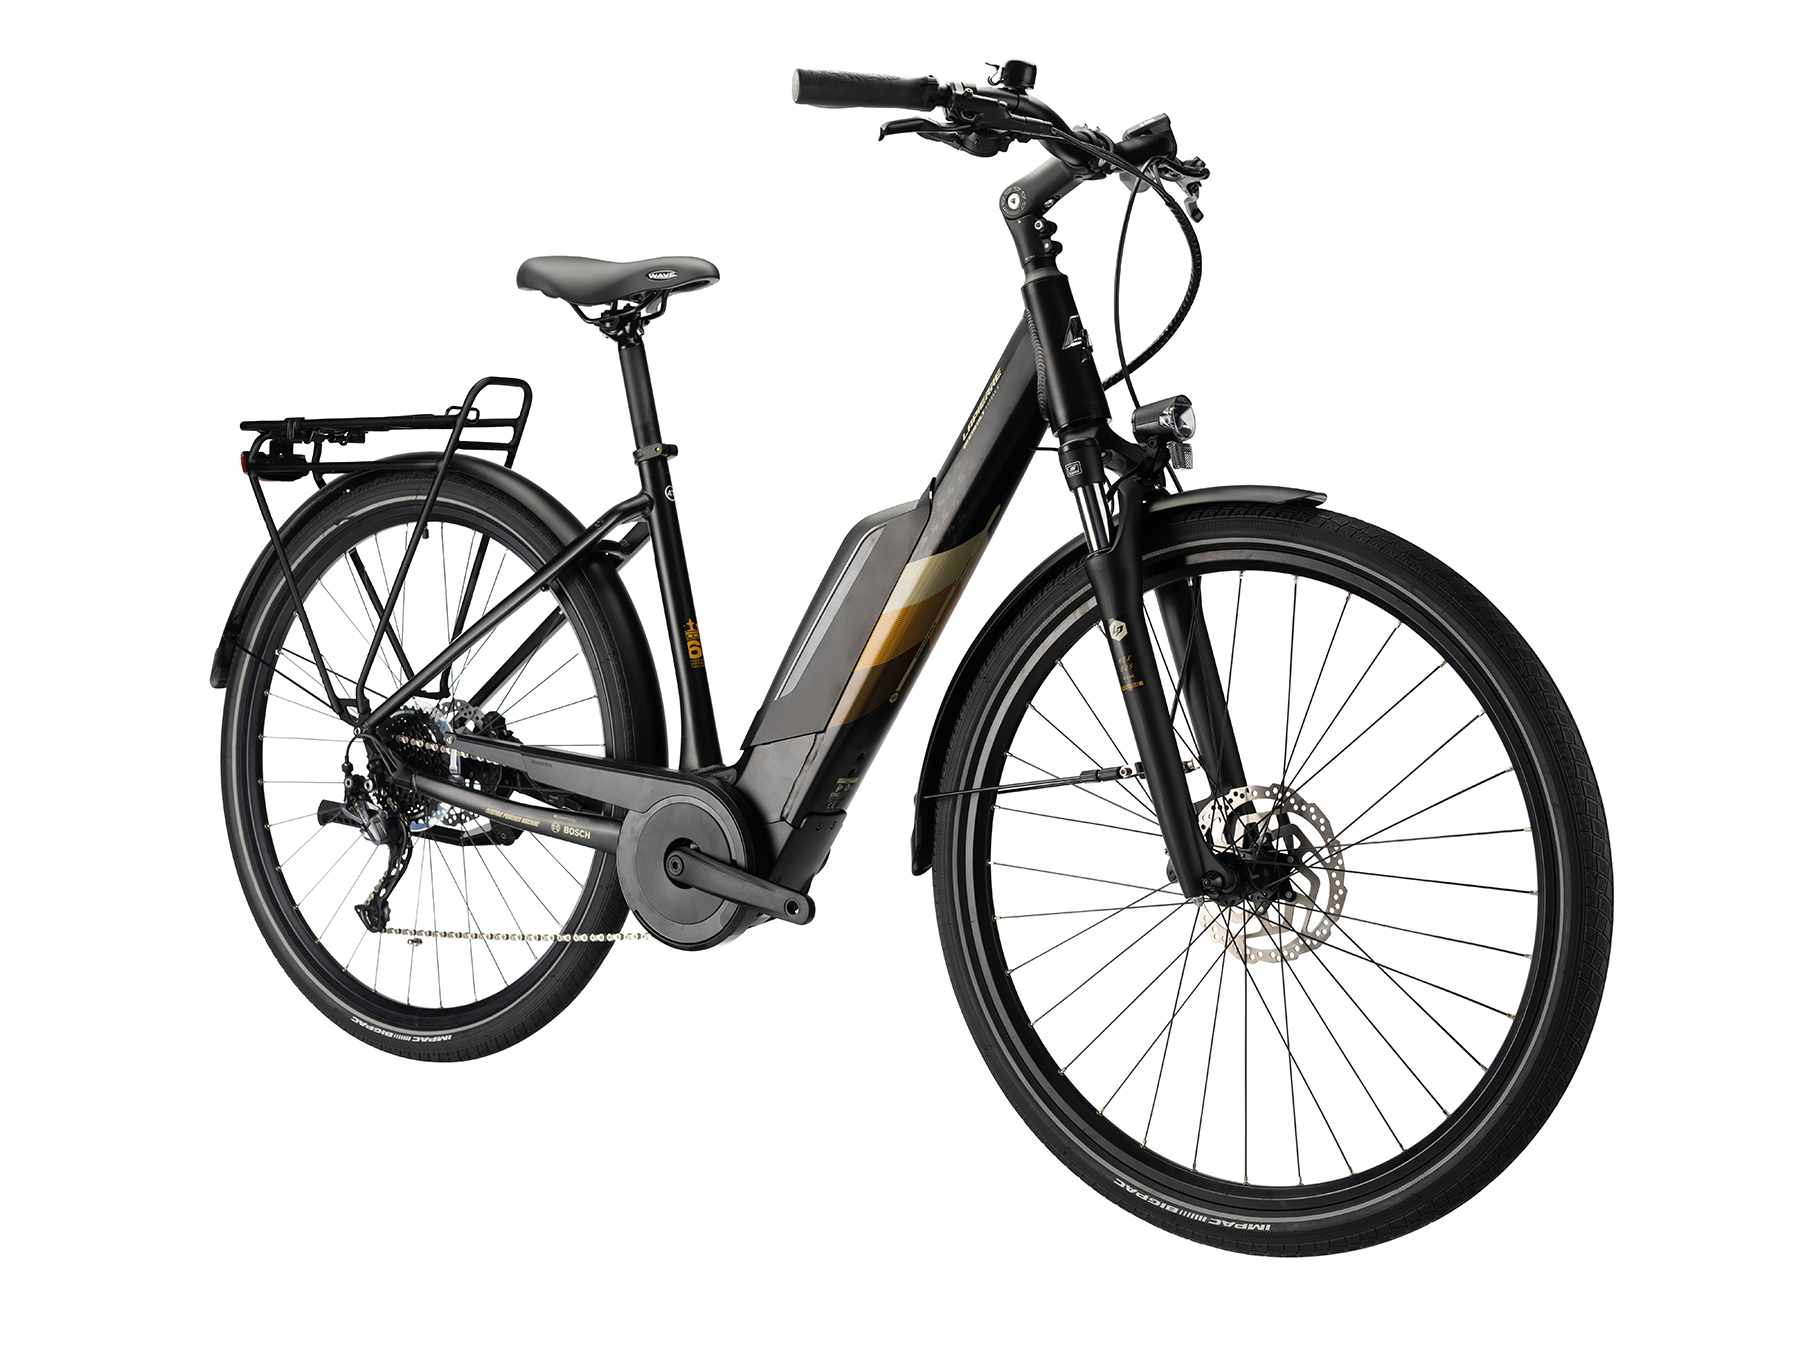 Lapierre Overvolt Urban 6.5 2021 Electric Urban Bike 1